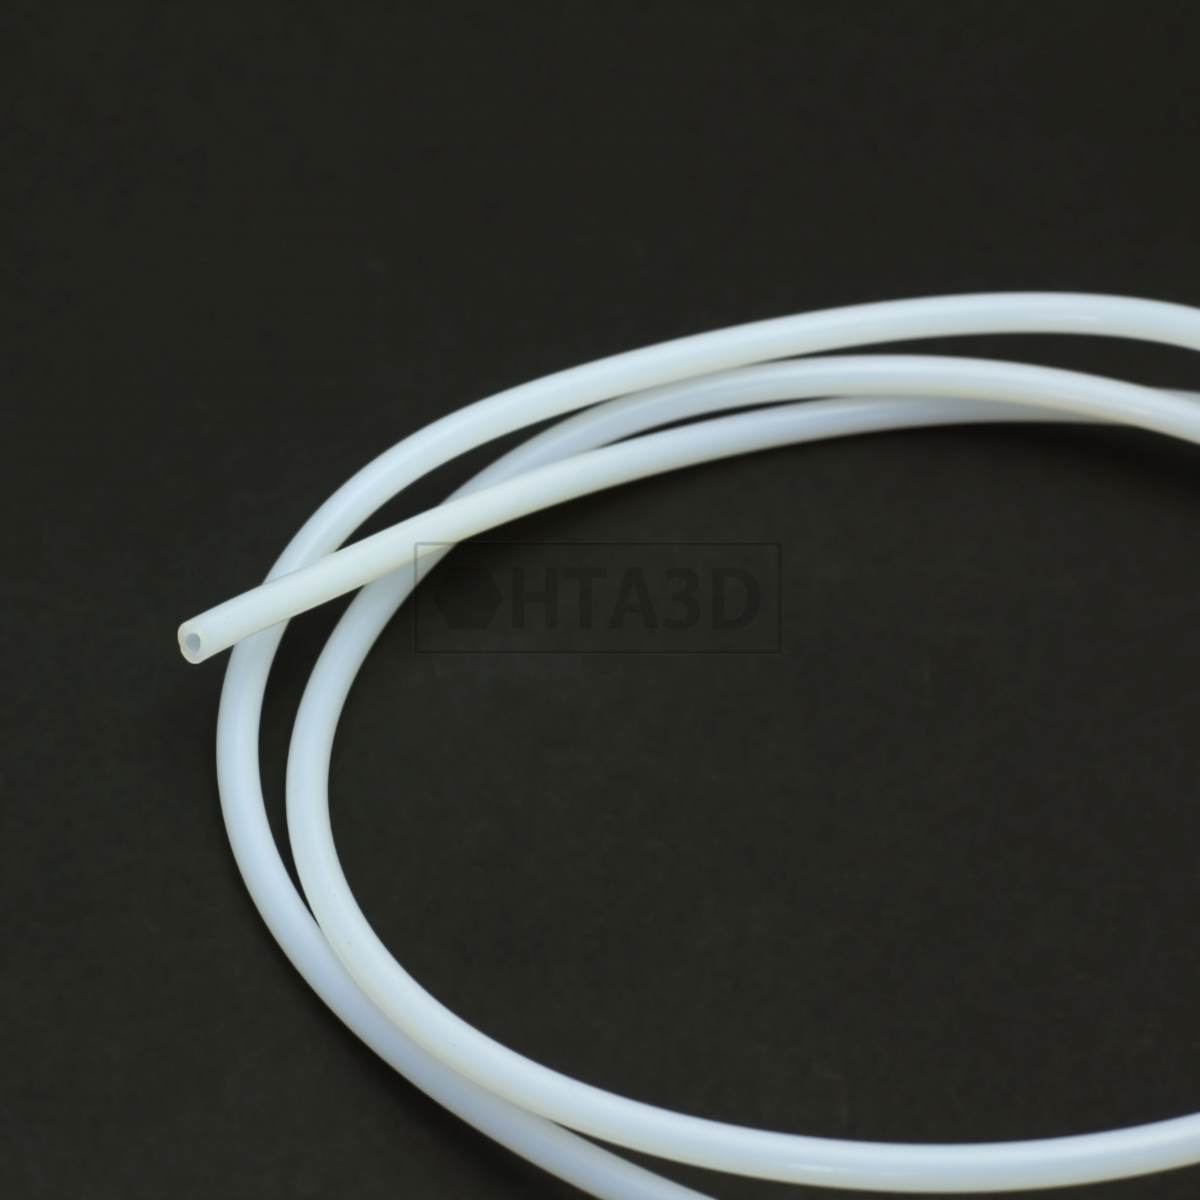 Teflon tube (PTFE) for 3mm filament IØ 4MM / OØ 6MM - 10cm - HTA3D